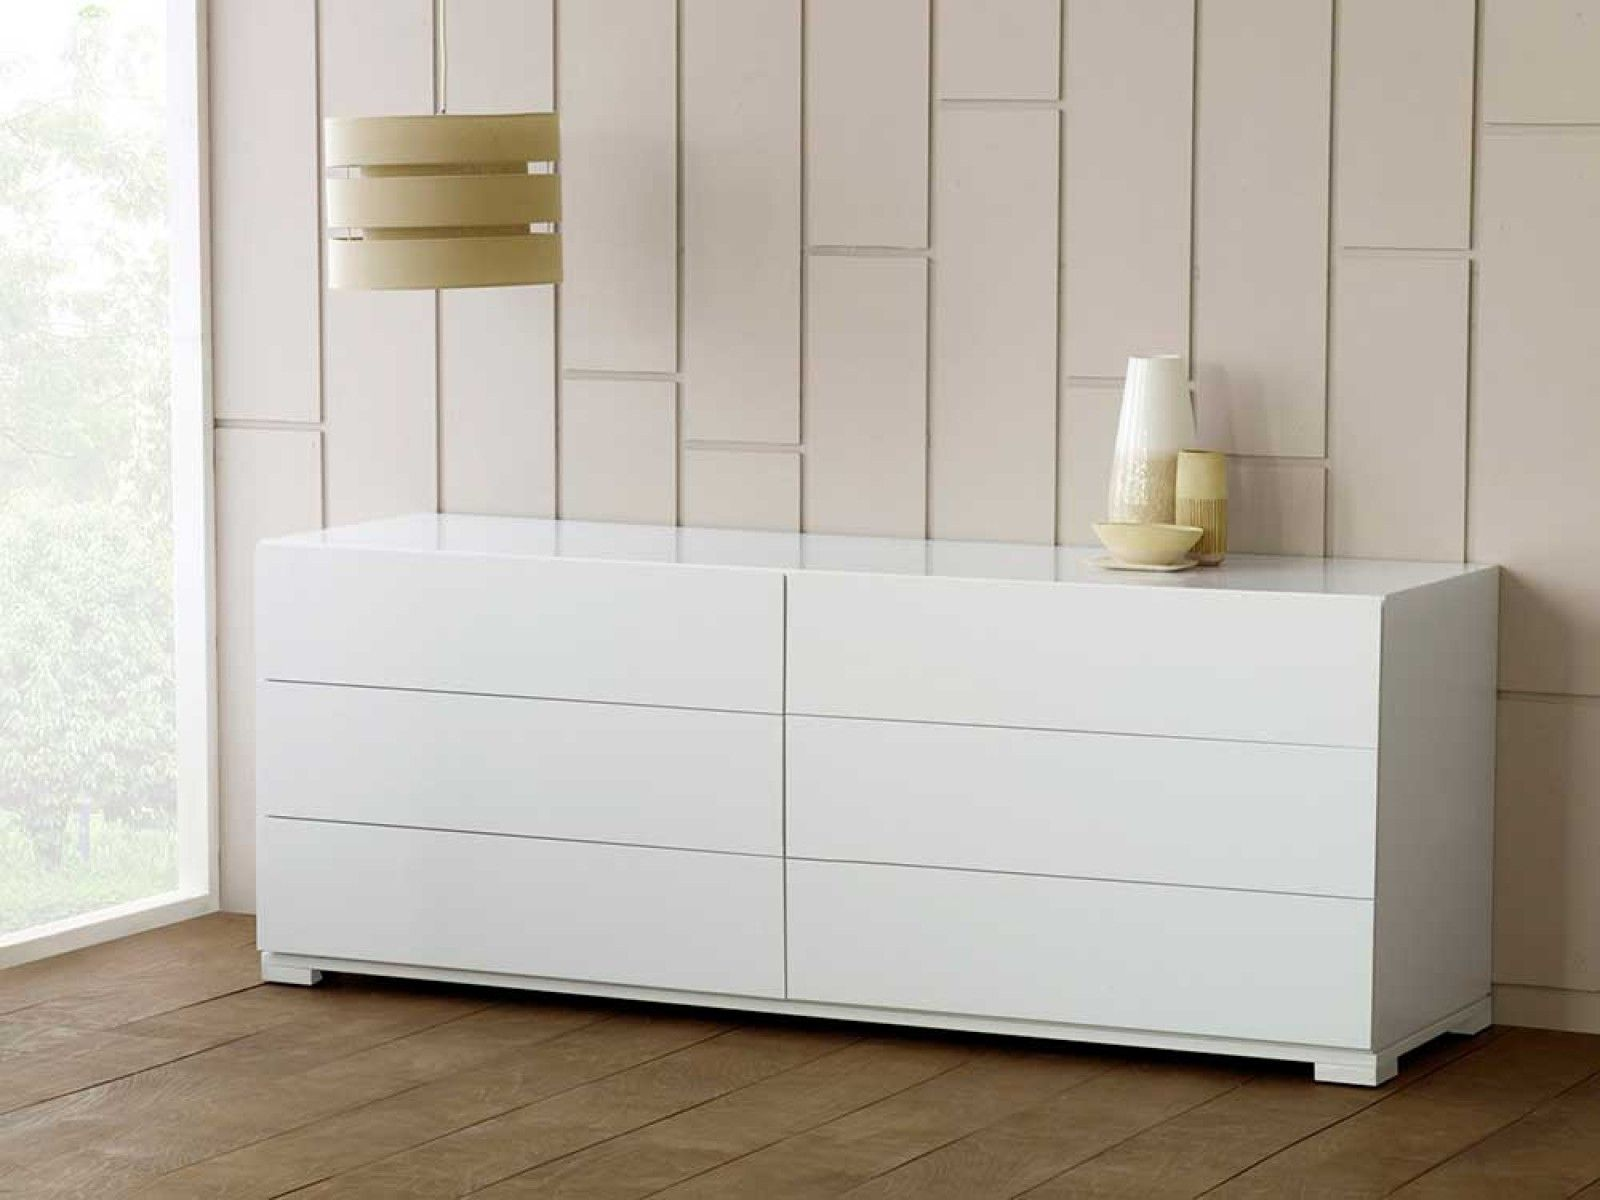 BEDROOM Bedroom Storage Bench White Wooden Drawers With Chest Large 6 Drawer